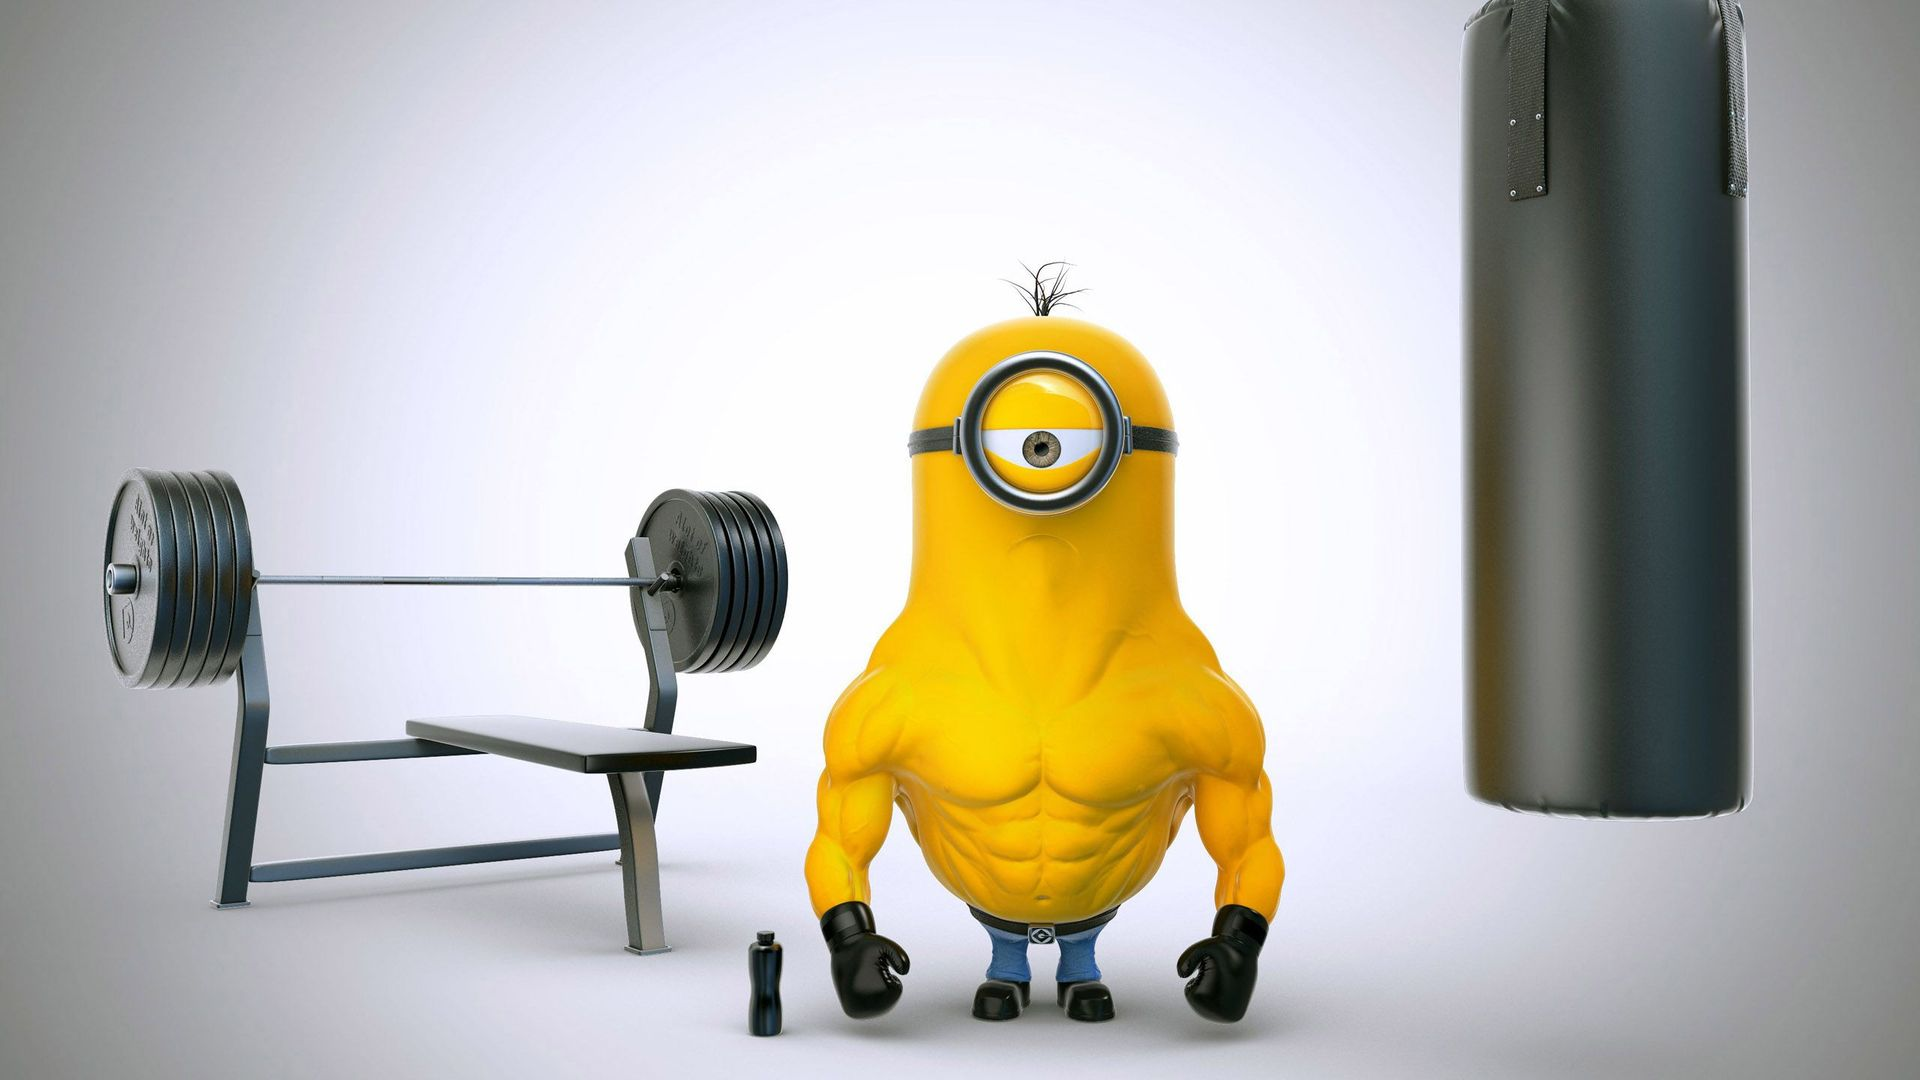 Minion Body Packs Funny HD Wallpaper   Stylish HD Wallpapers 1920x1080